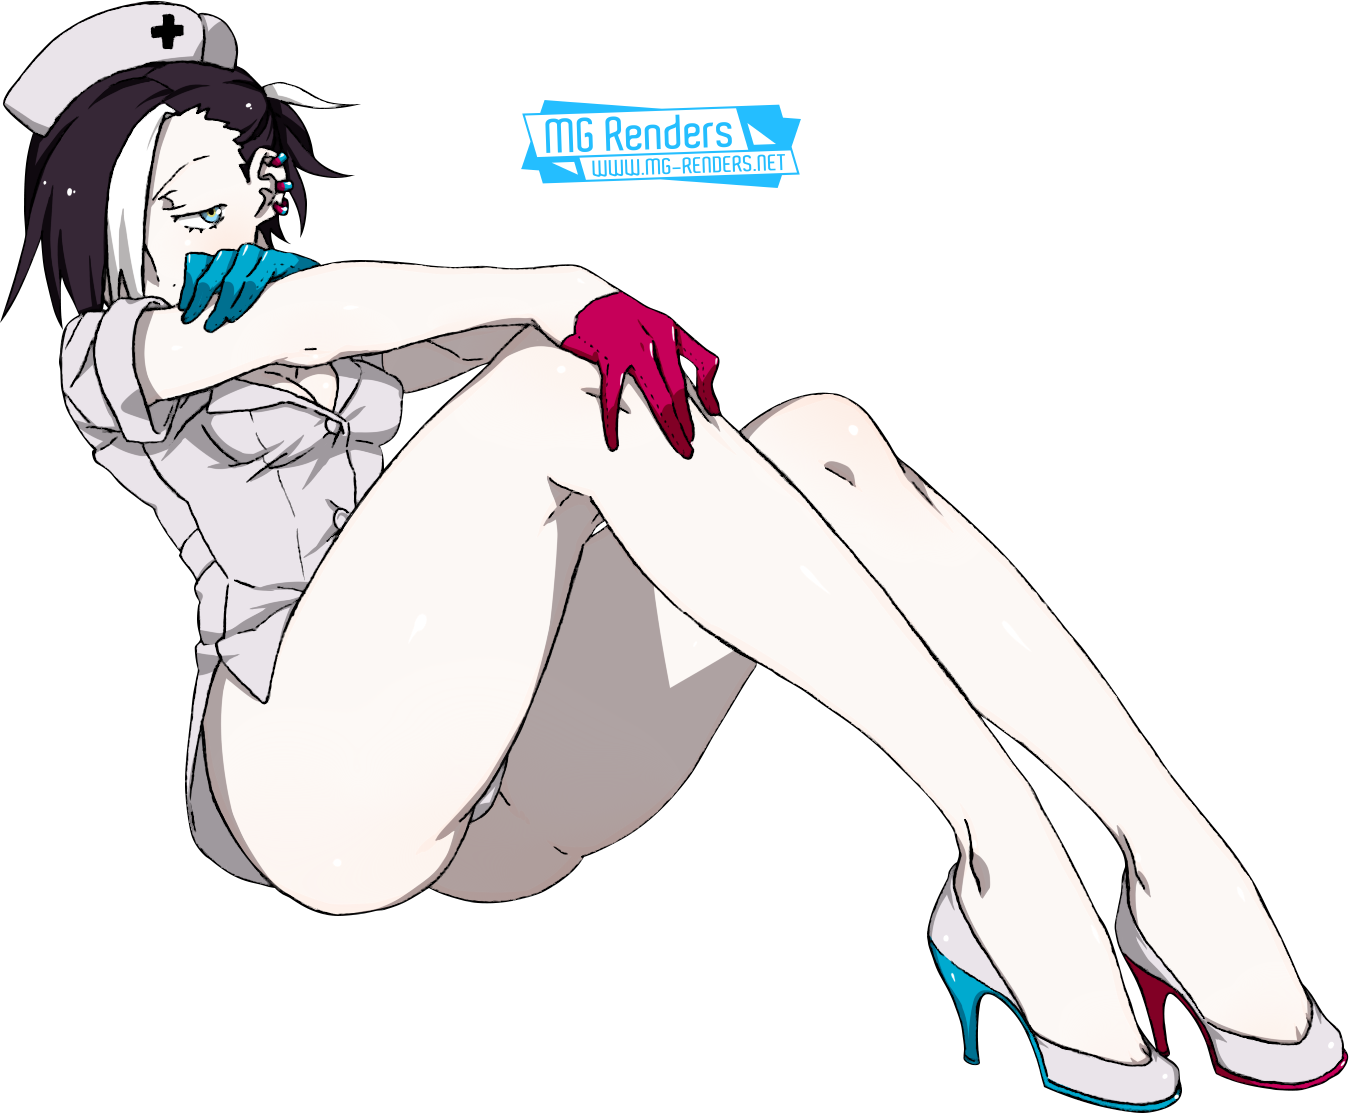 Tags: Render, Ass, Black hair, Black Hood, Cleavage, Full body, High heels, Kamezaemon, Nurse, Original Character, Pantsu, Short hair